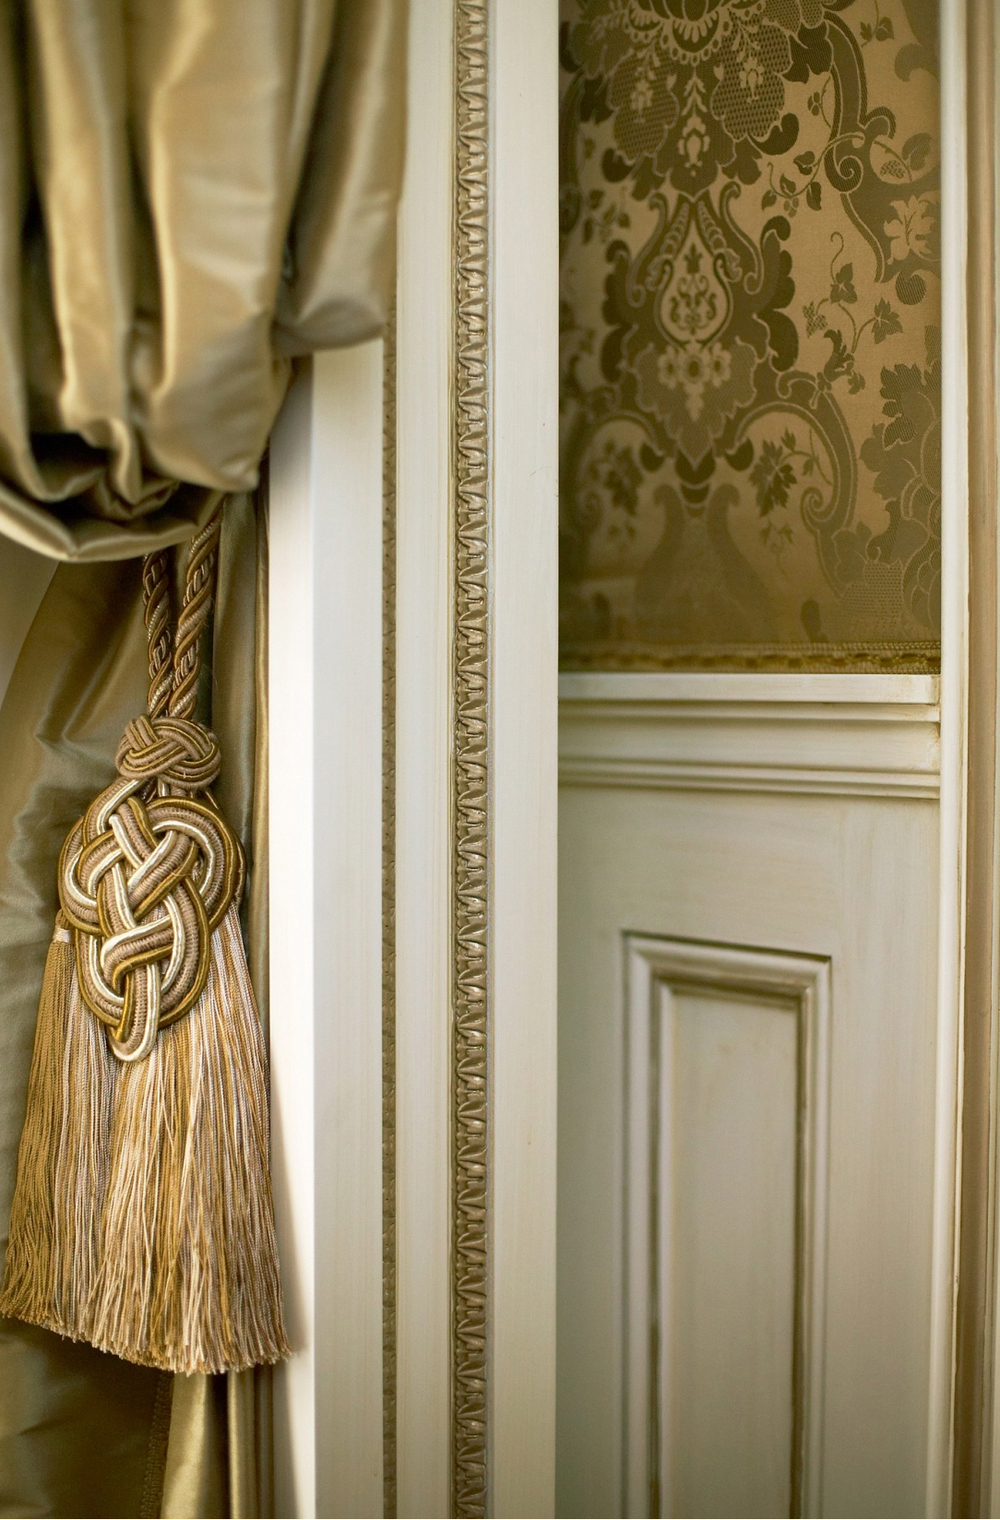 31-curtain tassel wall cloth.jpg